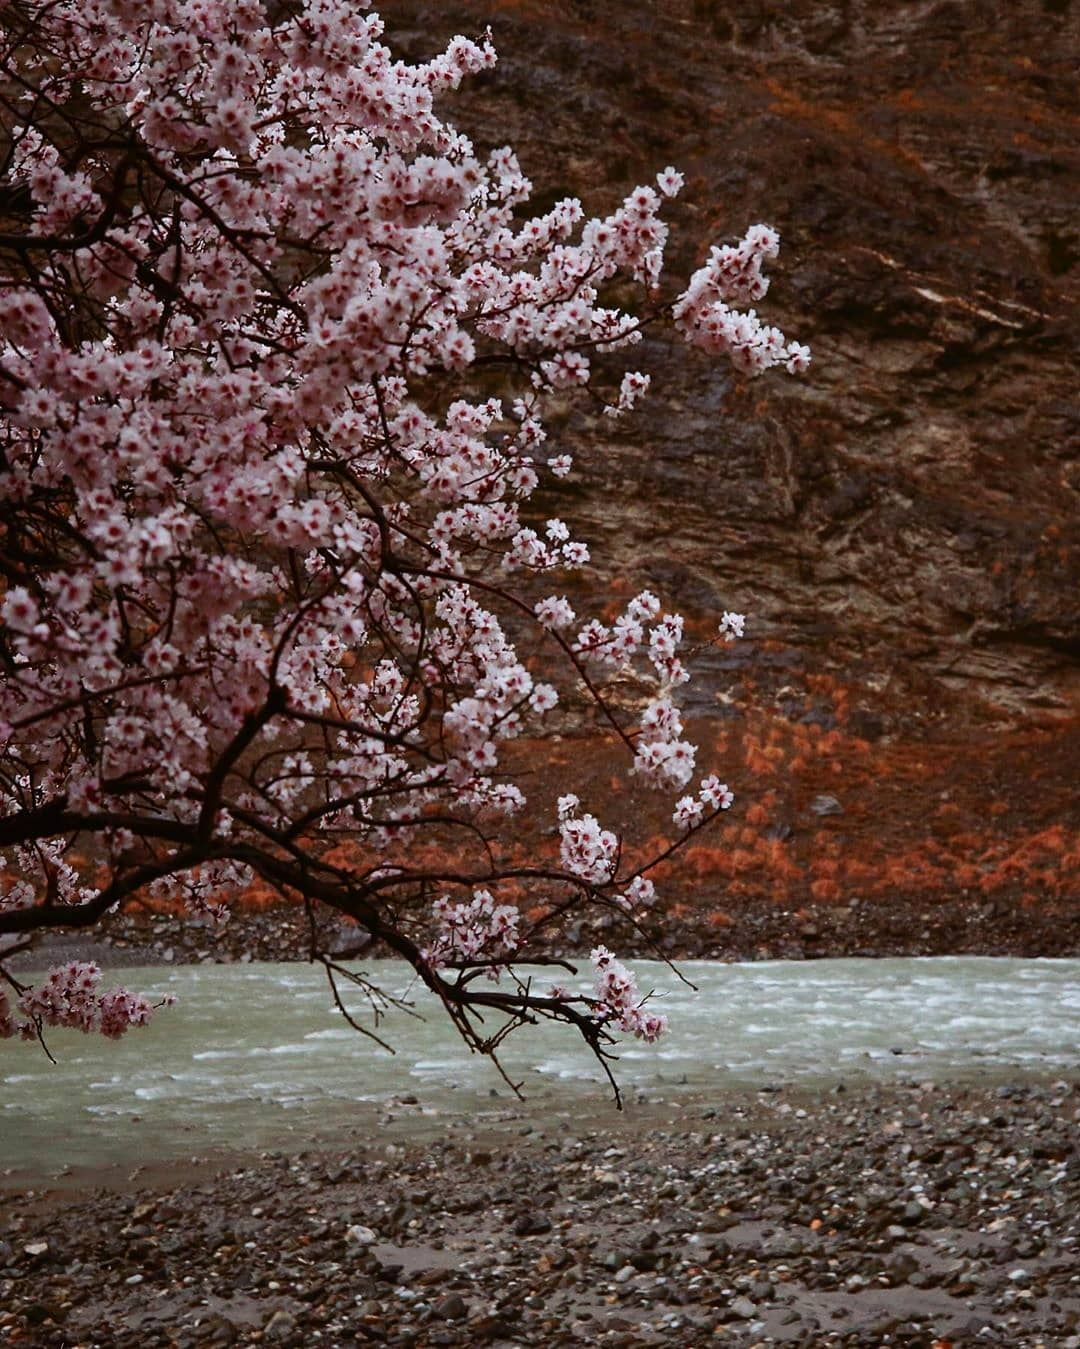 14 3k Likes 43 Comments Gobble Gobblegrams On Instagram Did You Know India Has It S Own Cherry Blossoms Too The Cherr Cherry Blossom Blossom Instagram